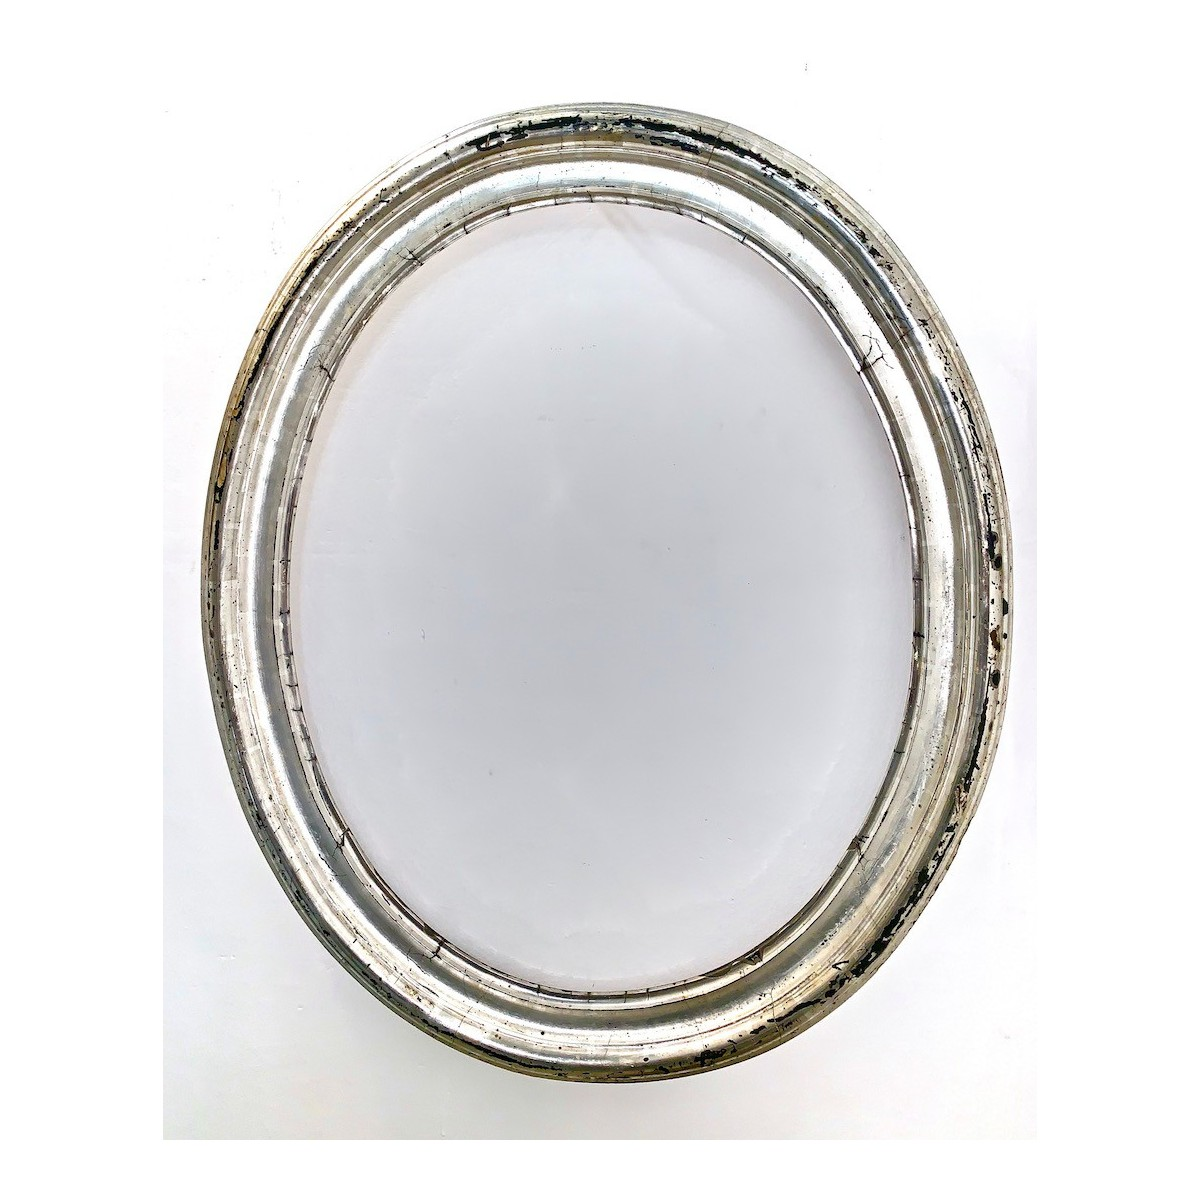 Oval silver frame 19th